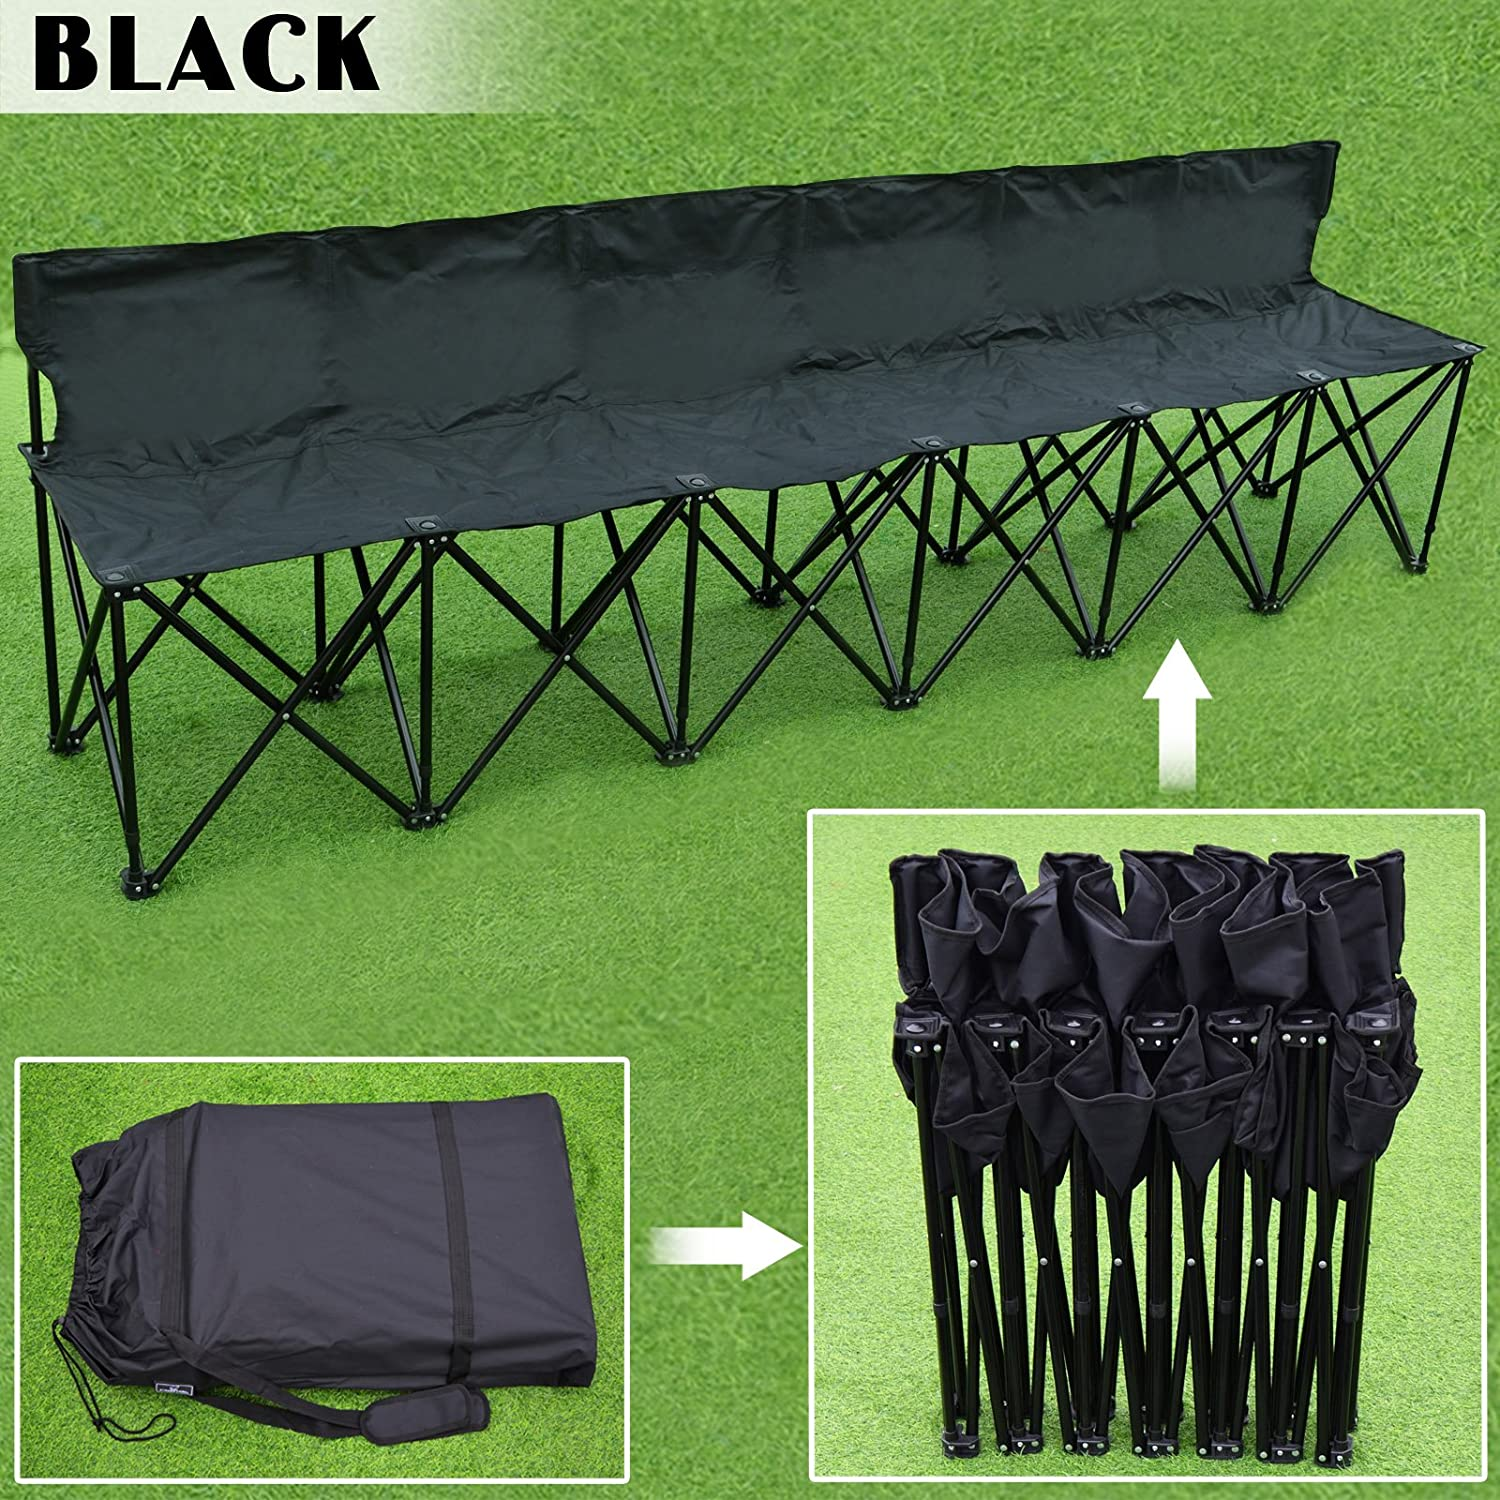 Folding Team Bench Part - 36: Amazon.com : Strong Camel Folding Portable Team Sports 6 Seater Sideline  Bench SitsOutdoor Waterproof : Sports U0026 Outdoors